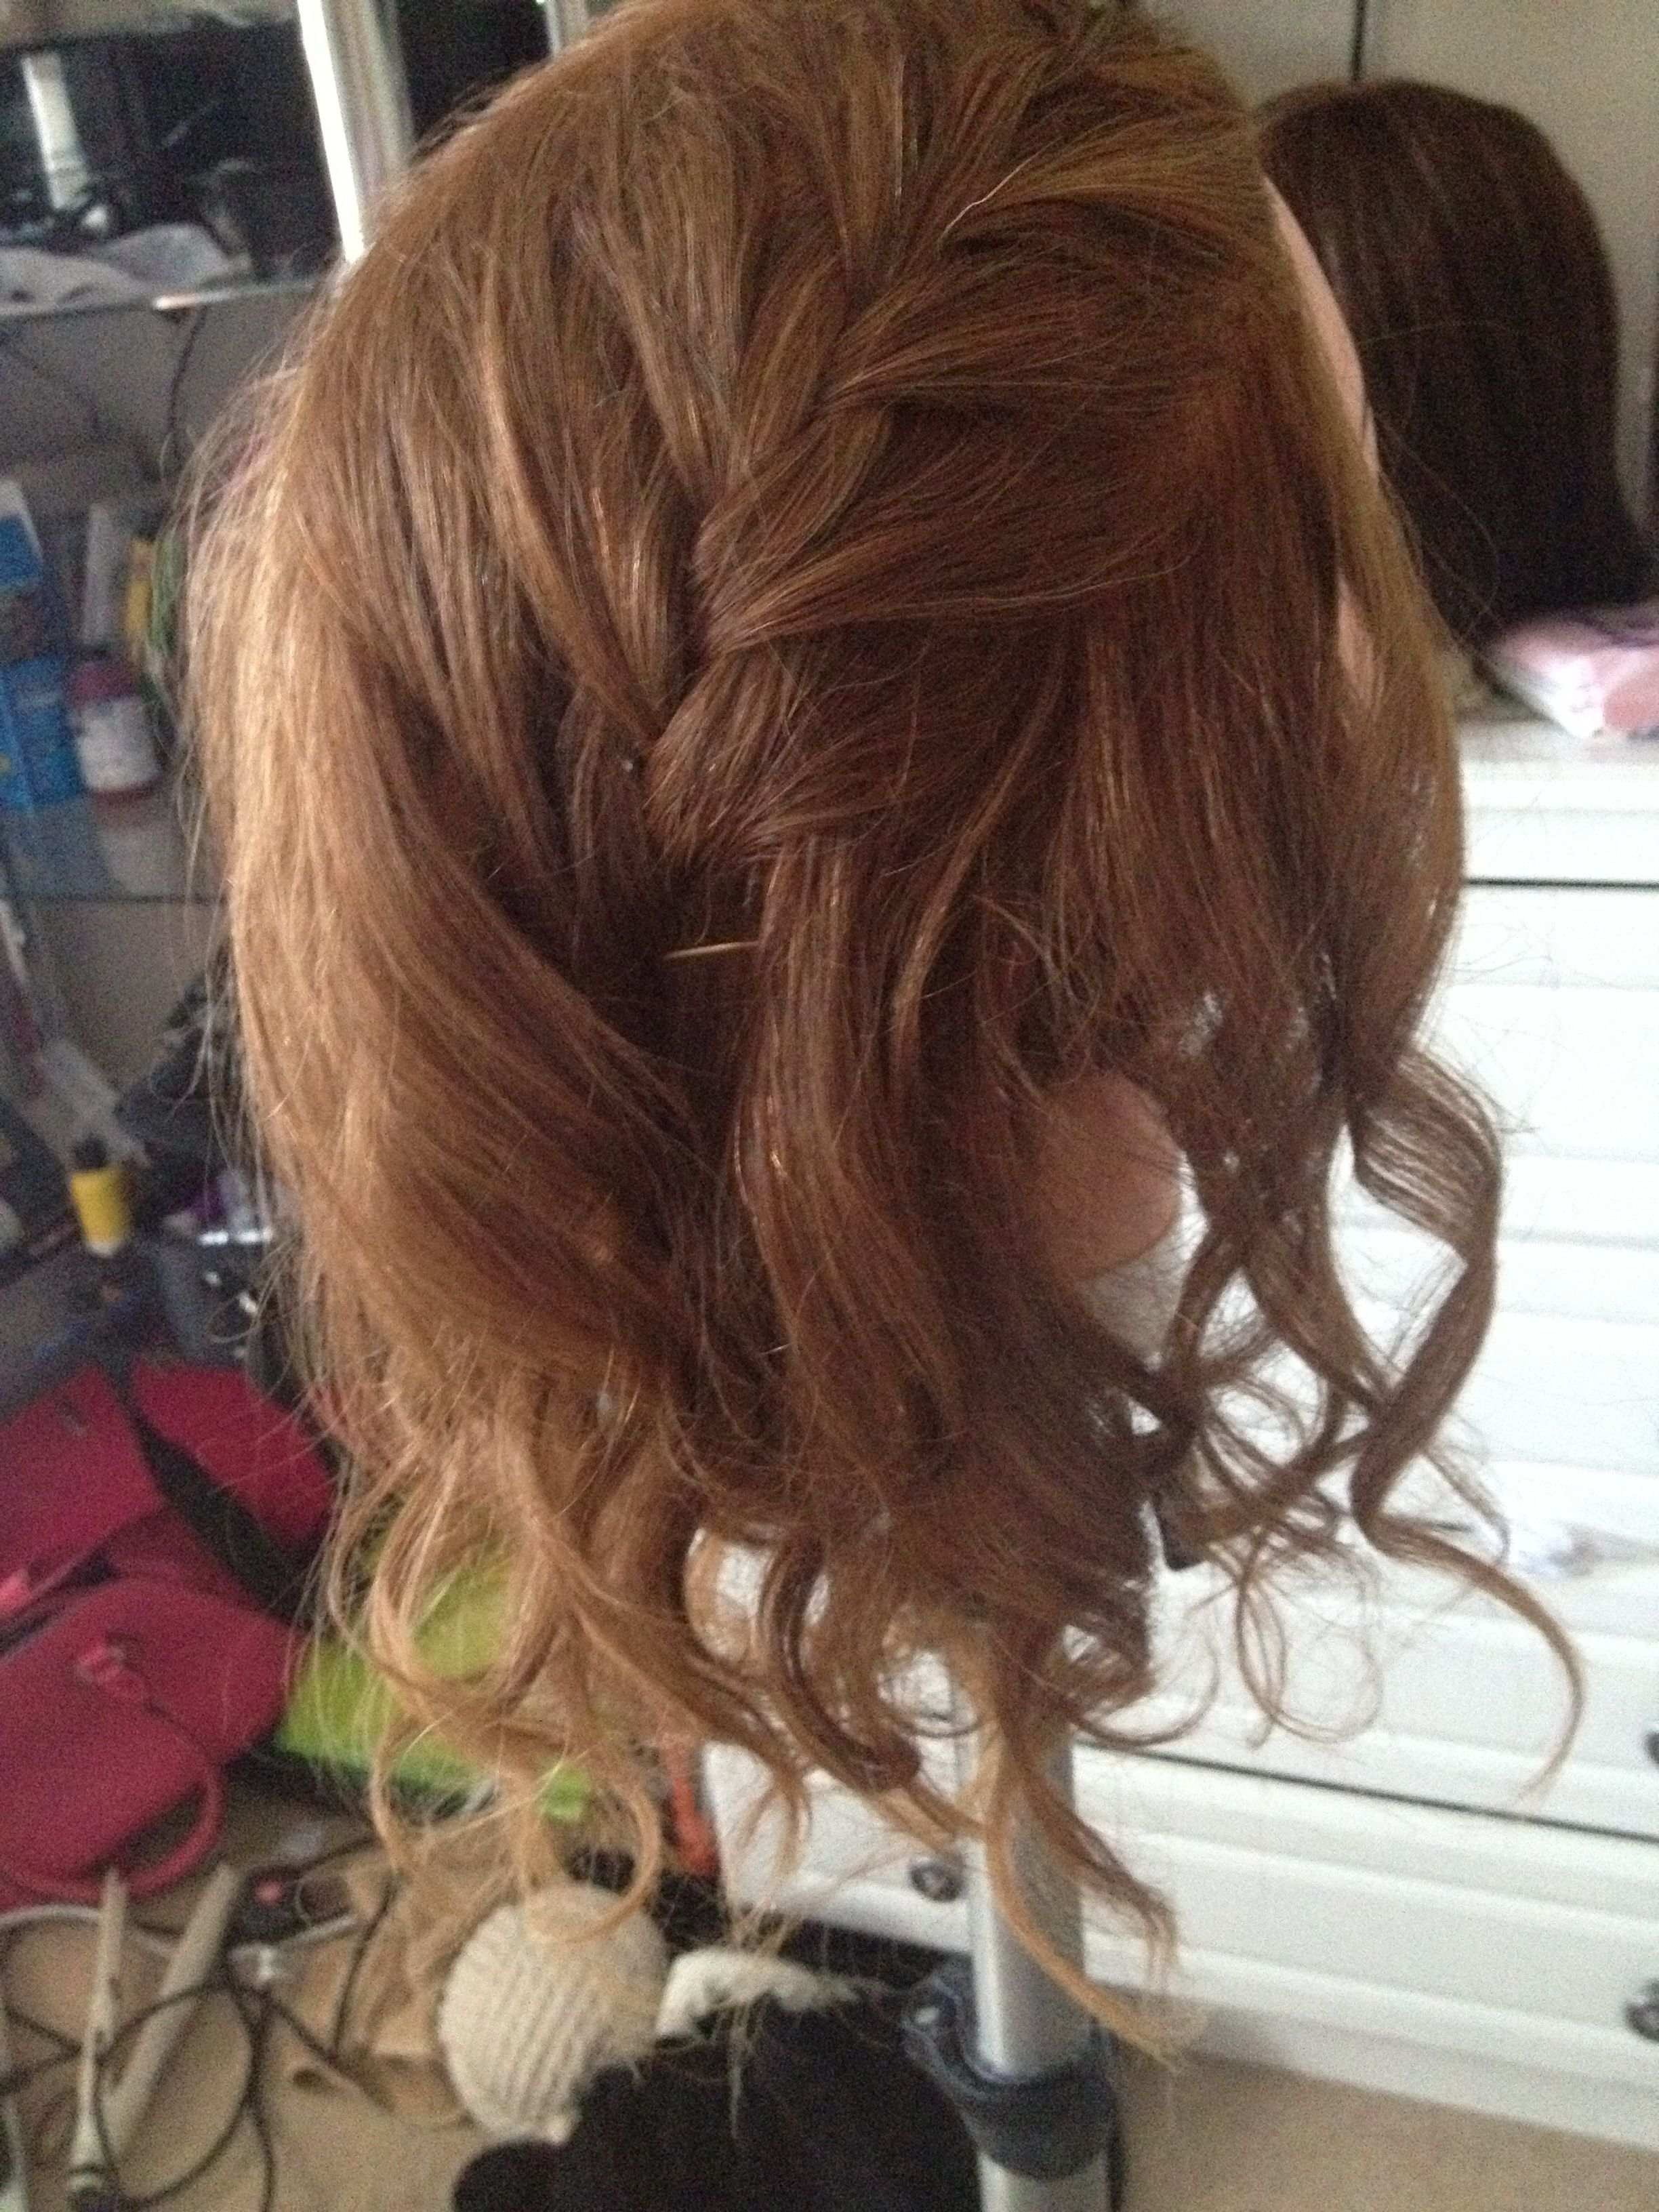 French braid with curls for long for short and for medium hair